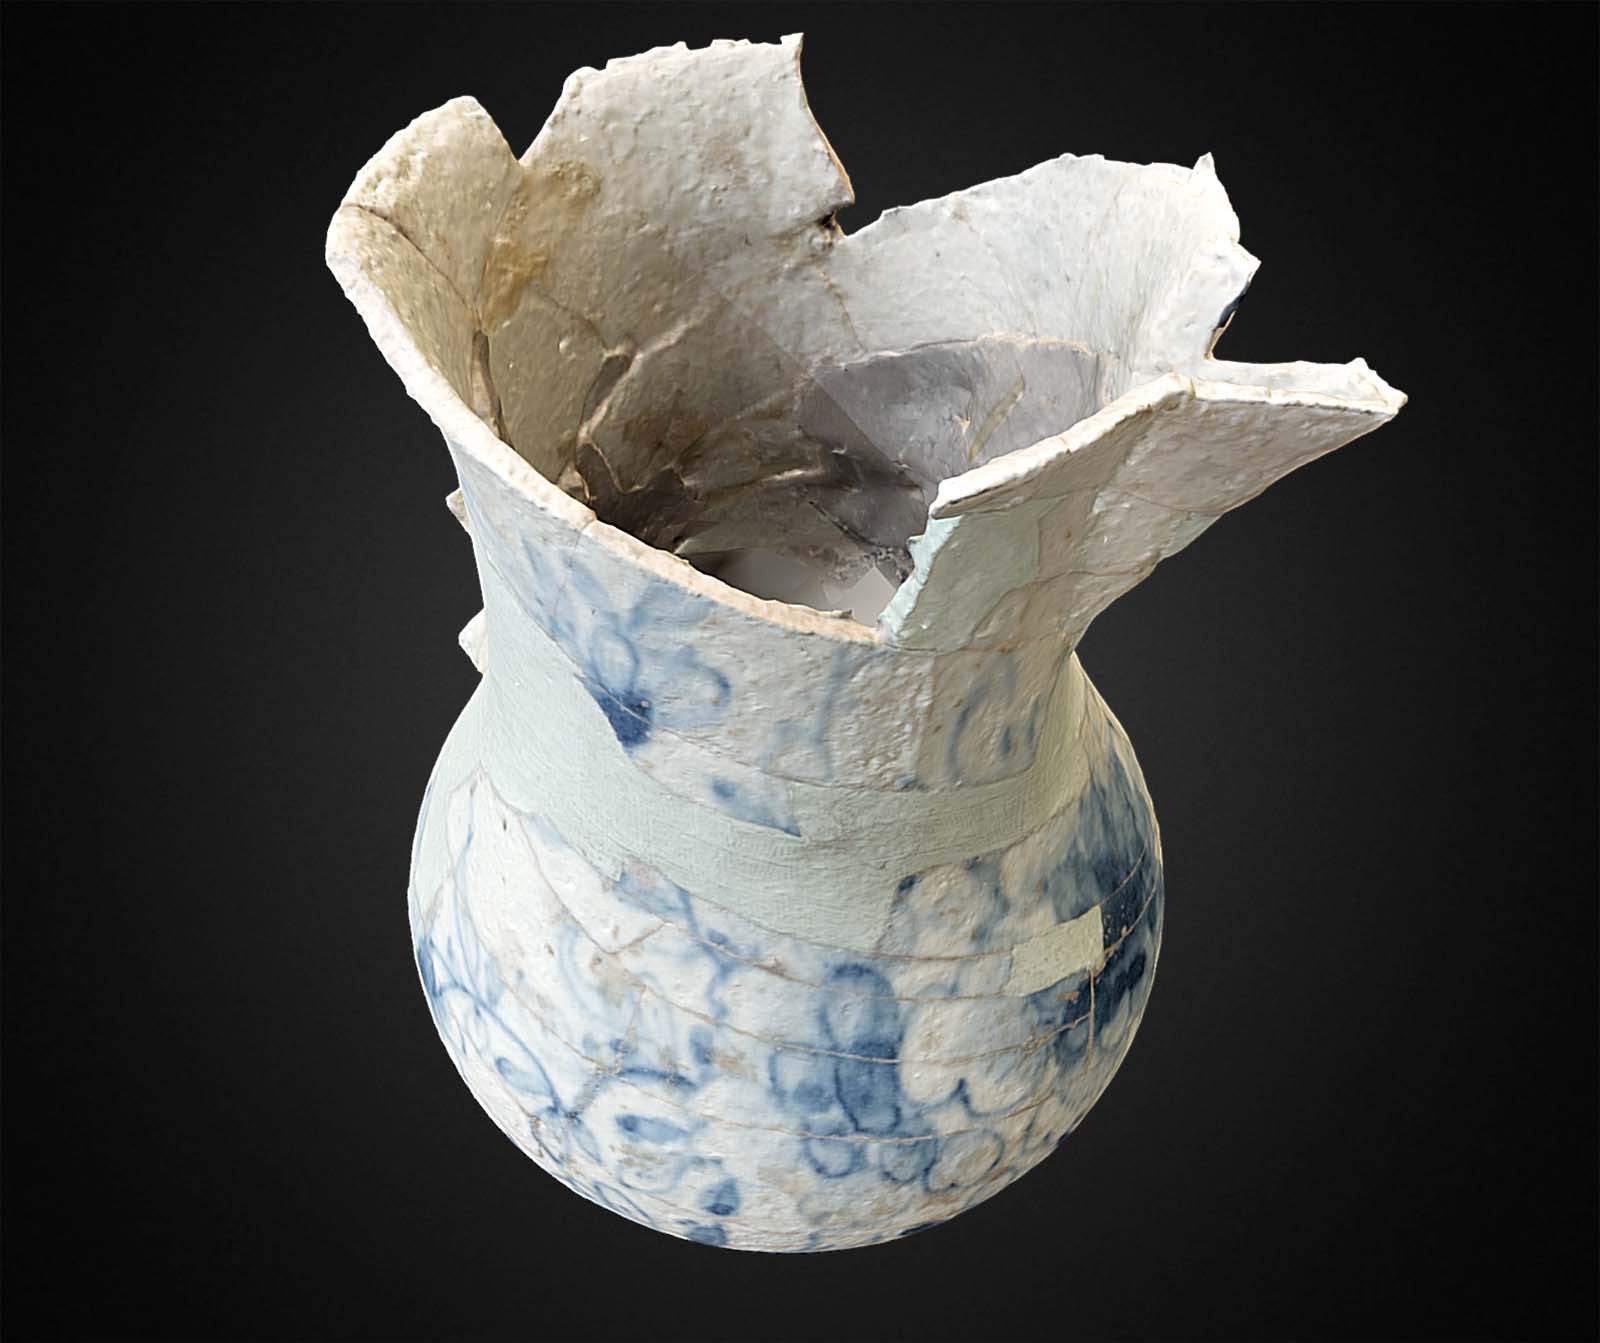 photo of a shattered porcelain vase reconstituted with tape and slip